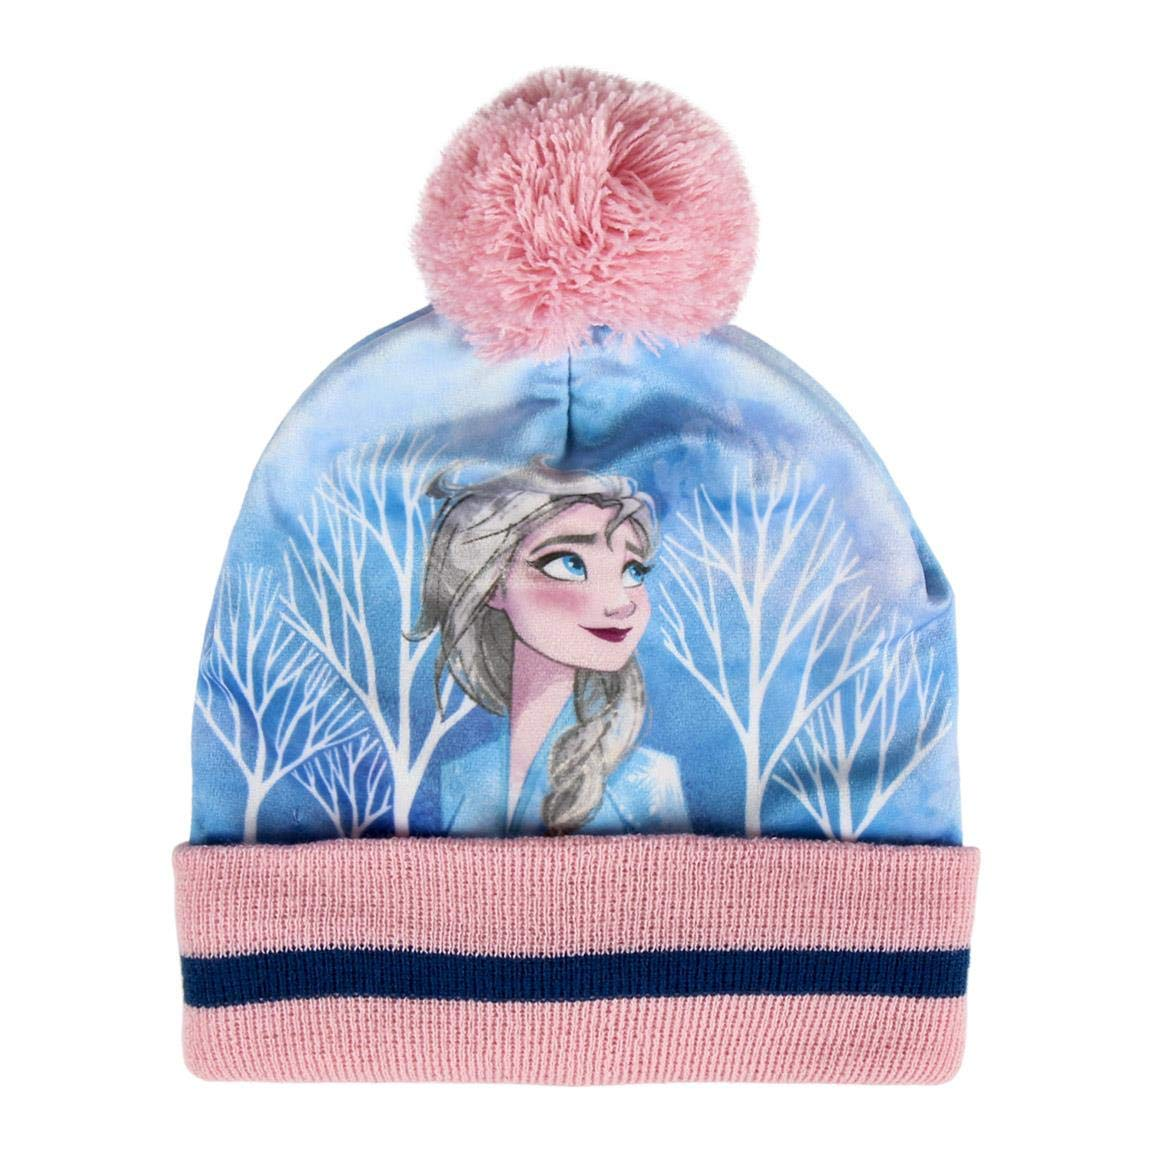 22-43XX Set Invernale 2 o 3 pz Cappello Guanti e Scaldacollo Frozen Movie II Disney Elsa e Anna Bambina